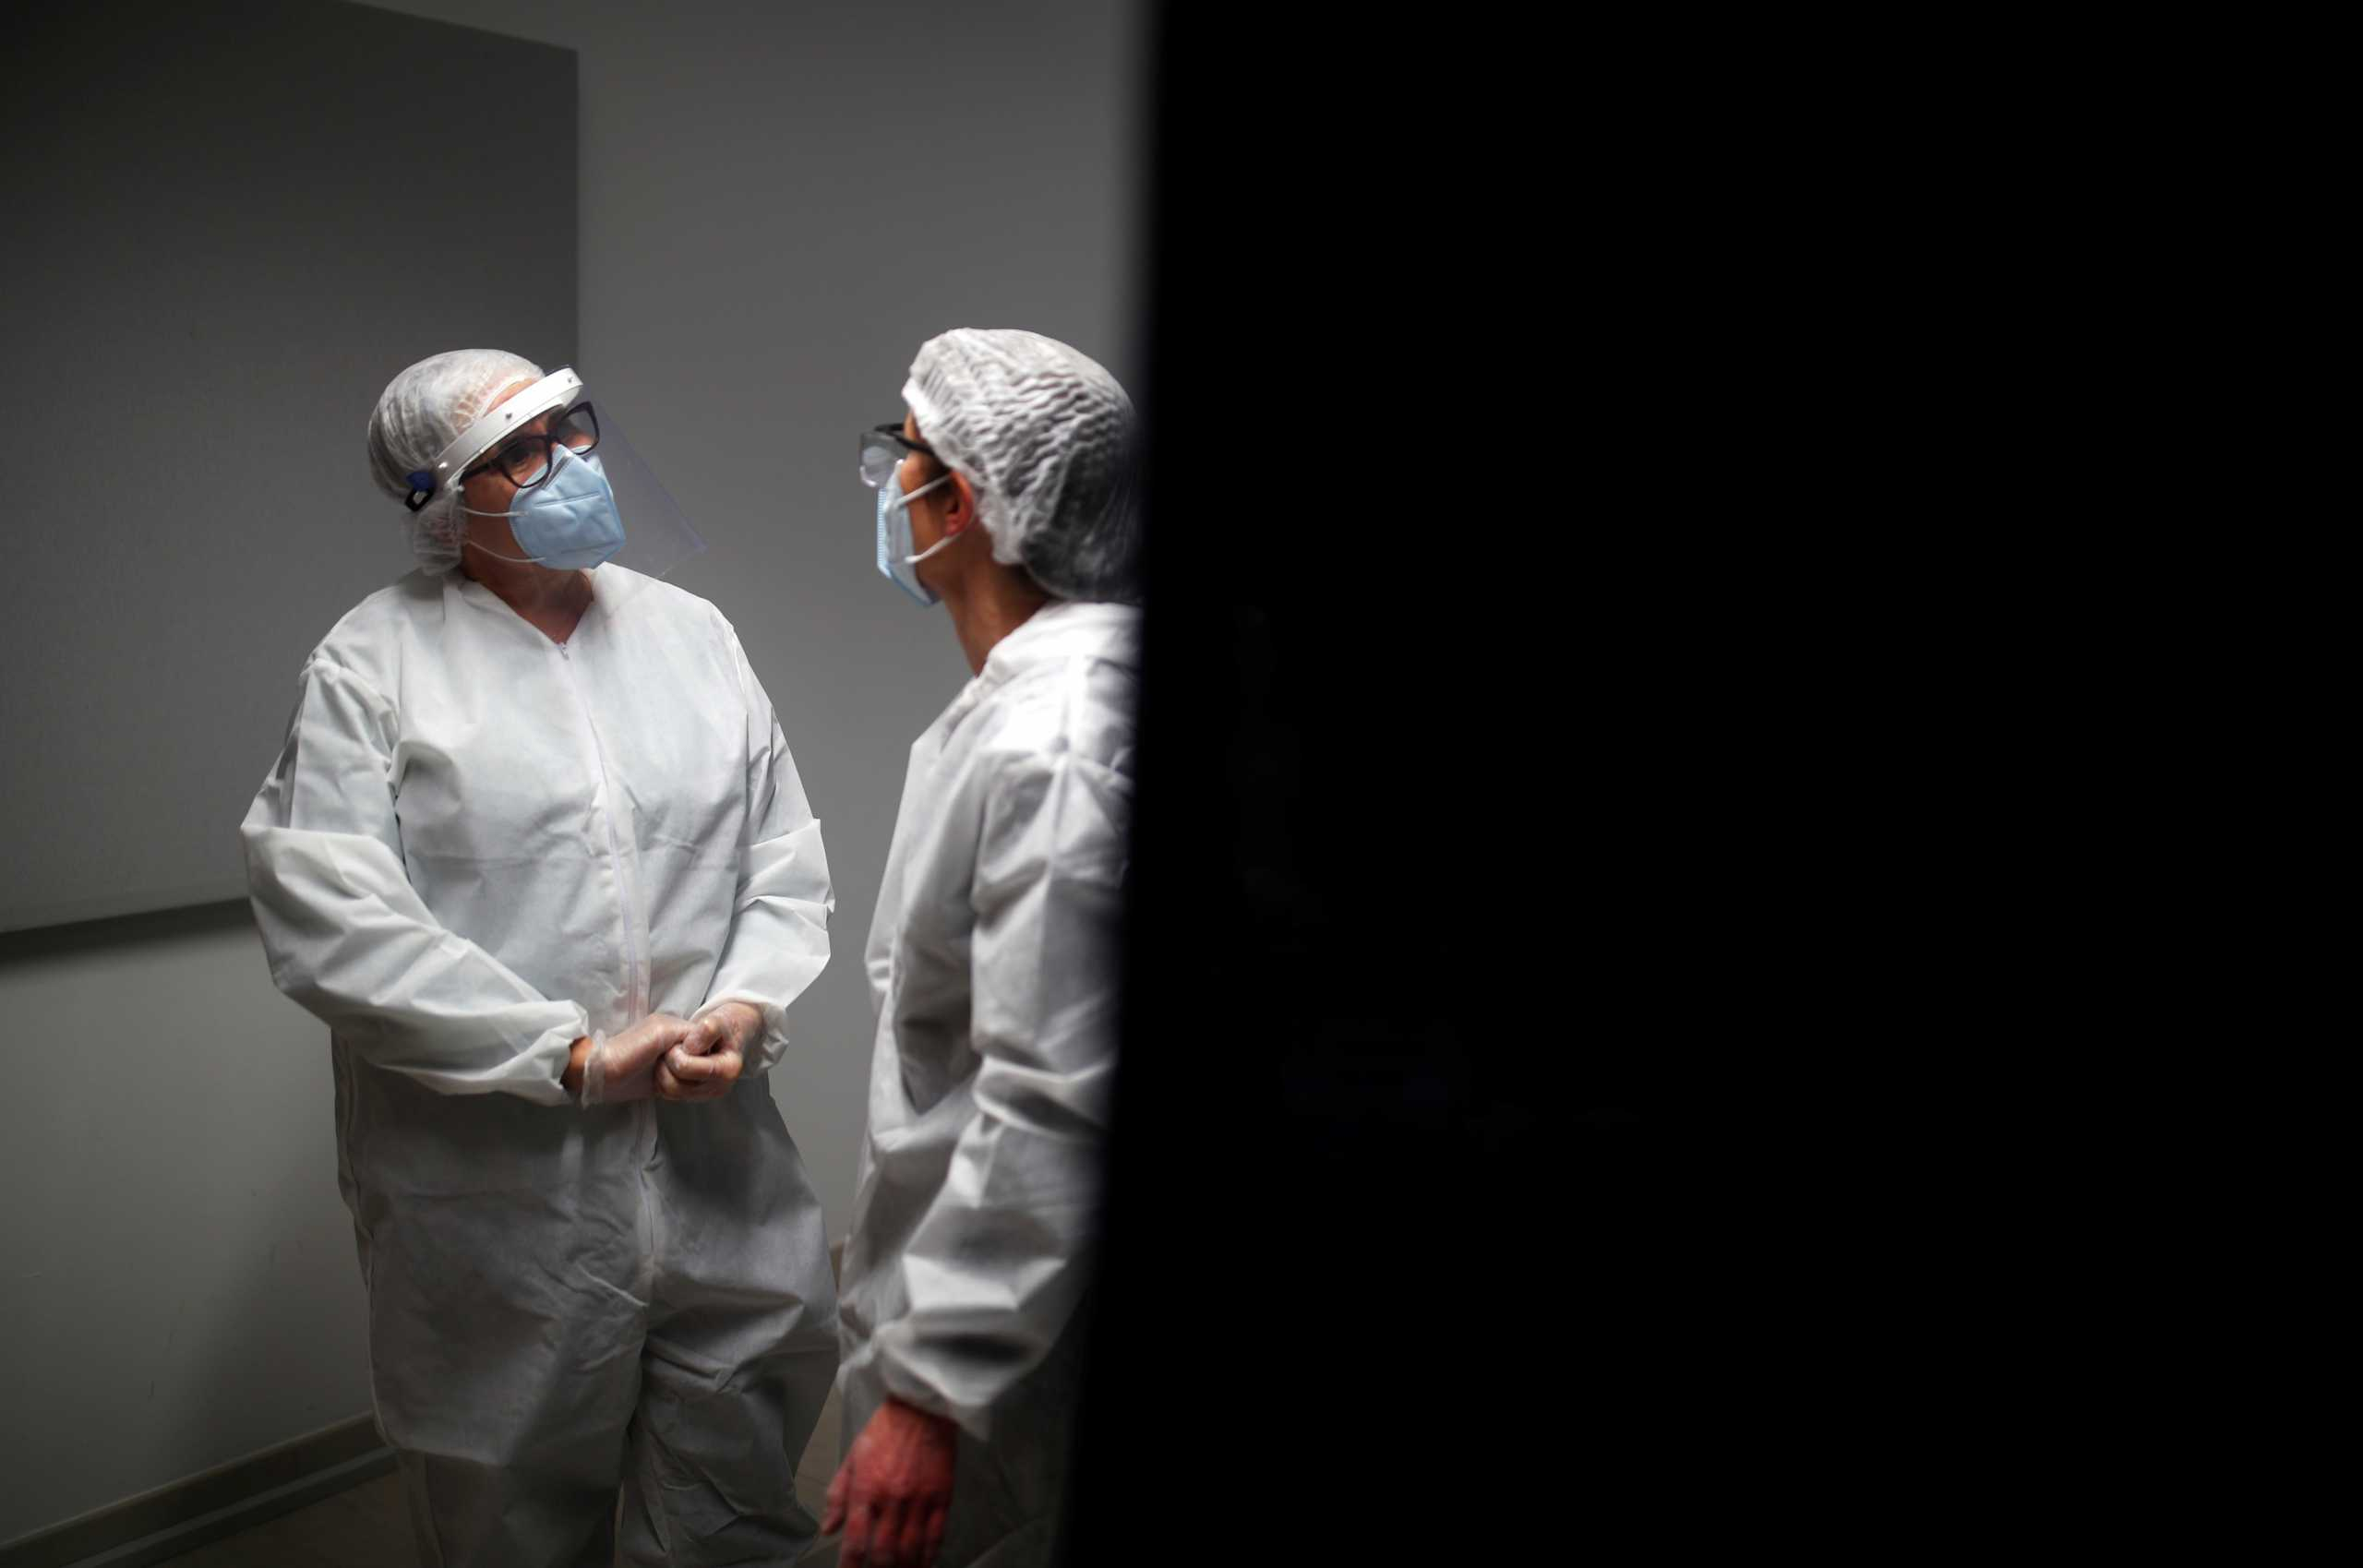 Medical workers, wearing protective suits and face masks, talk as they work at a coronavirus disease (COVID-19) testing centre in Le Bignon, France, December 22, 2020. REUTERS/Stephane Mahe/File Photo